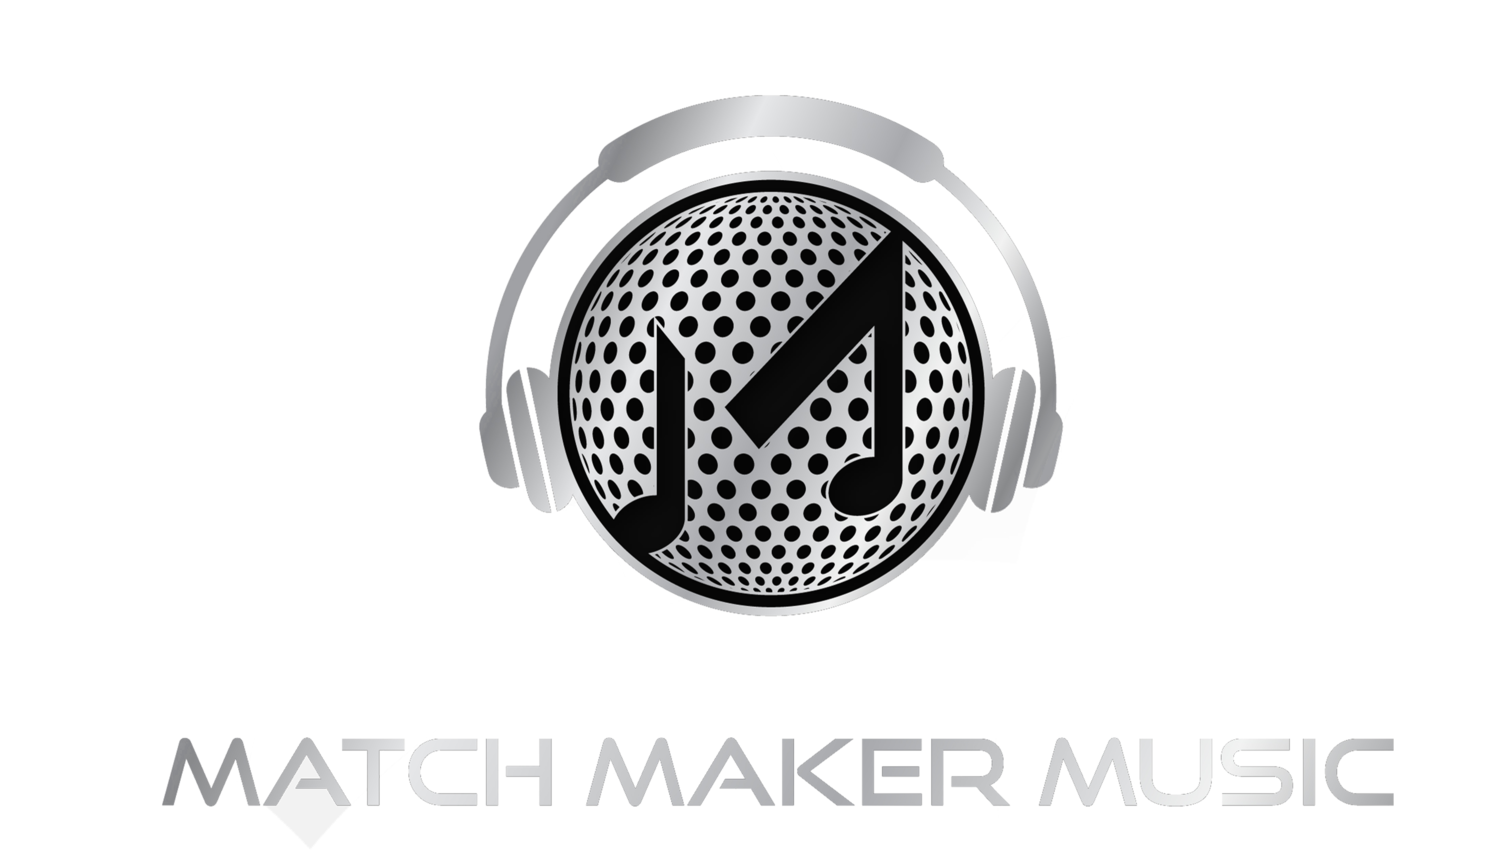 Match Maker Music